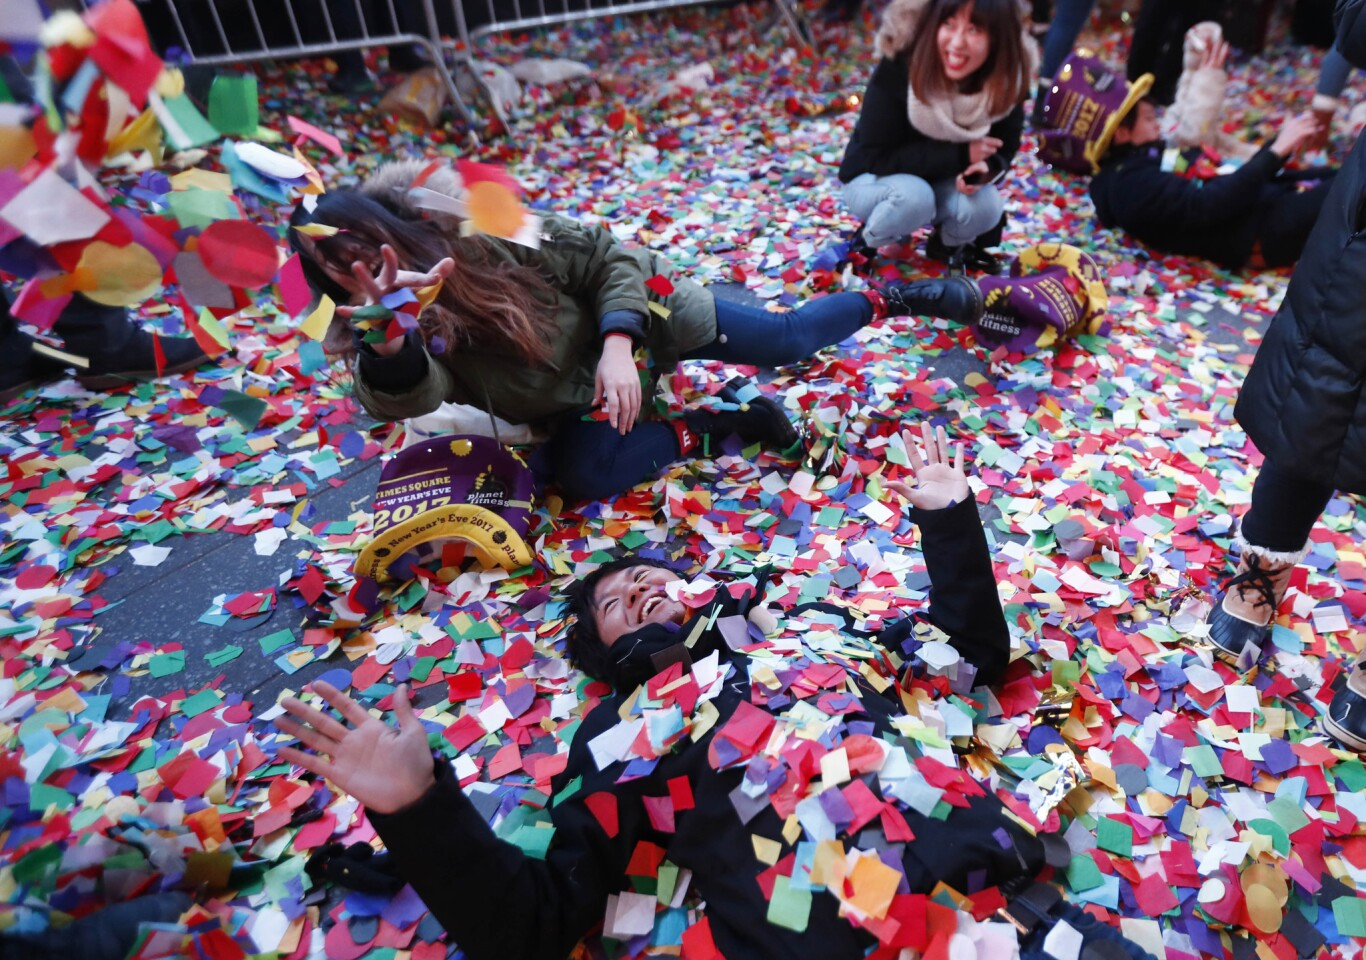 Revelers enjoy the confetti in Times Square.